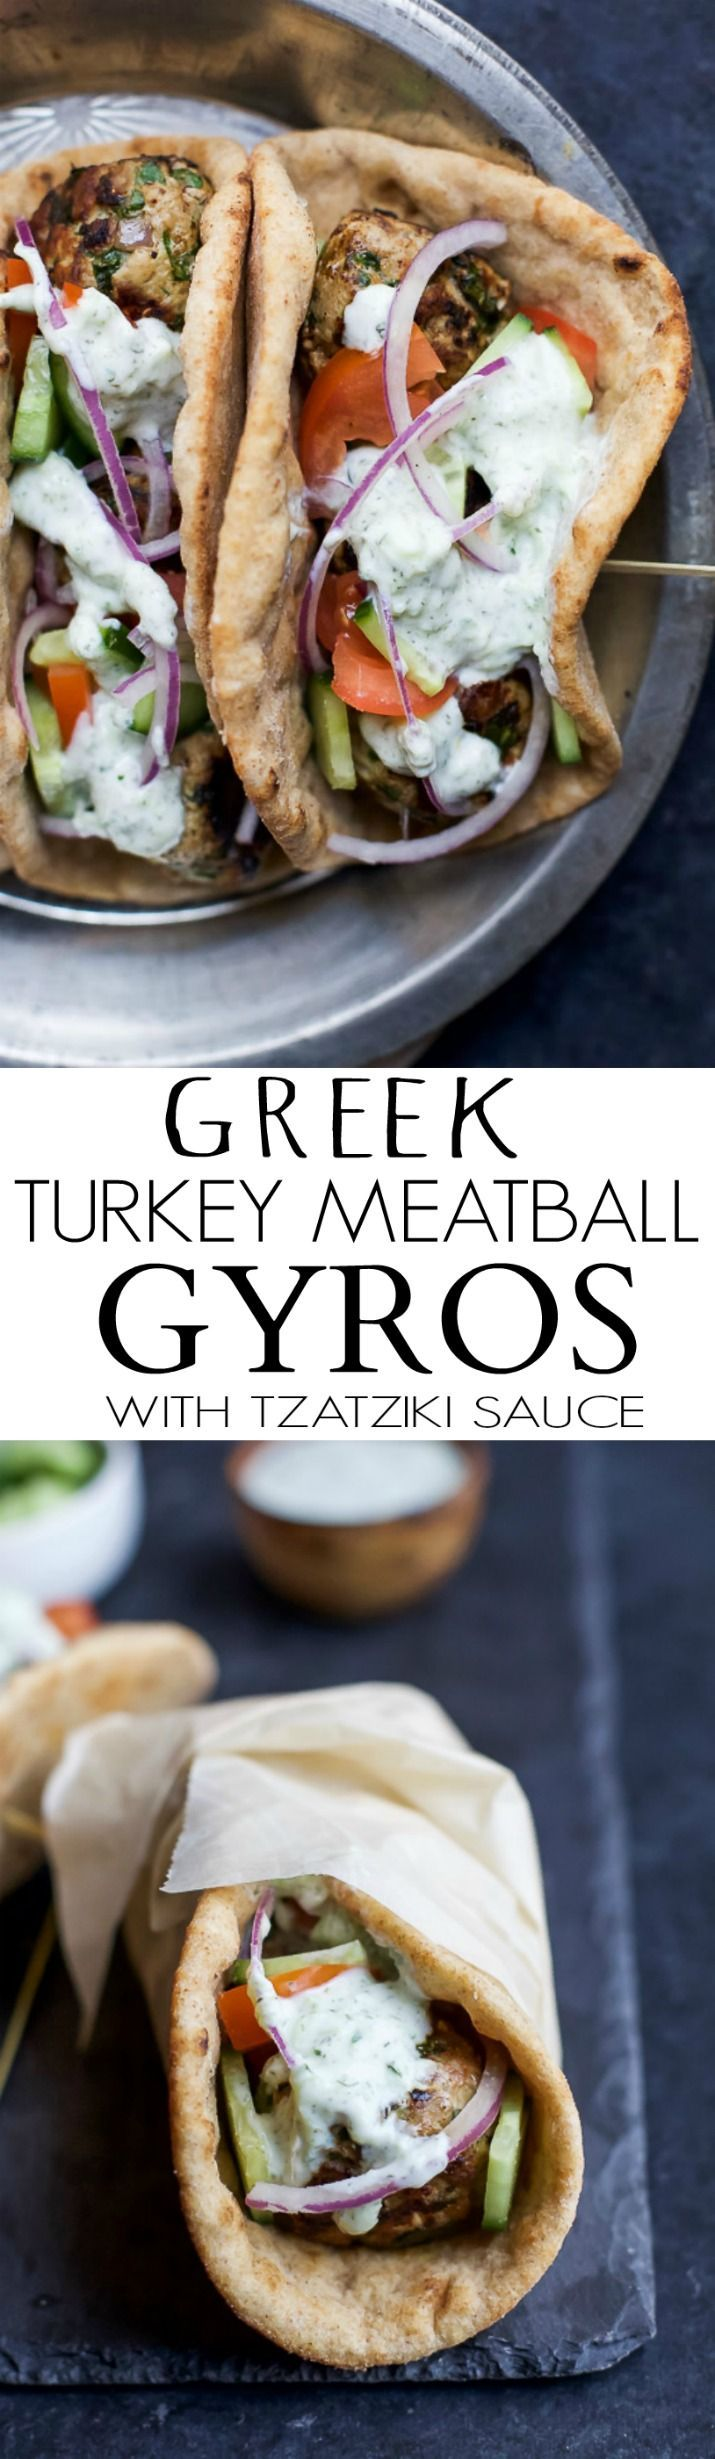 30 Minute Greek Turkey Meatball Gyros topped with a classic Tzatziki Sauce you'll want to swim in! These Gyros are the perfect healthy dinner option for the family and clock in 429 calories! | joyfulhealthyeats...